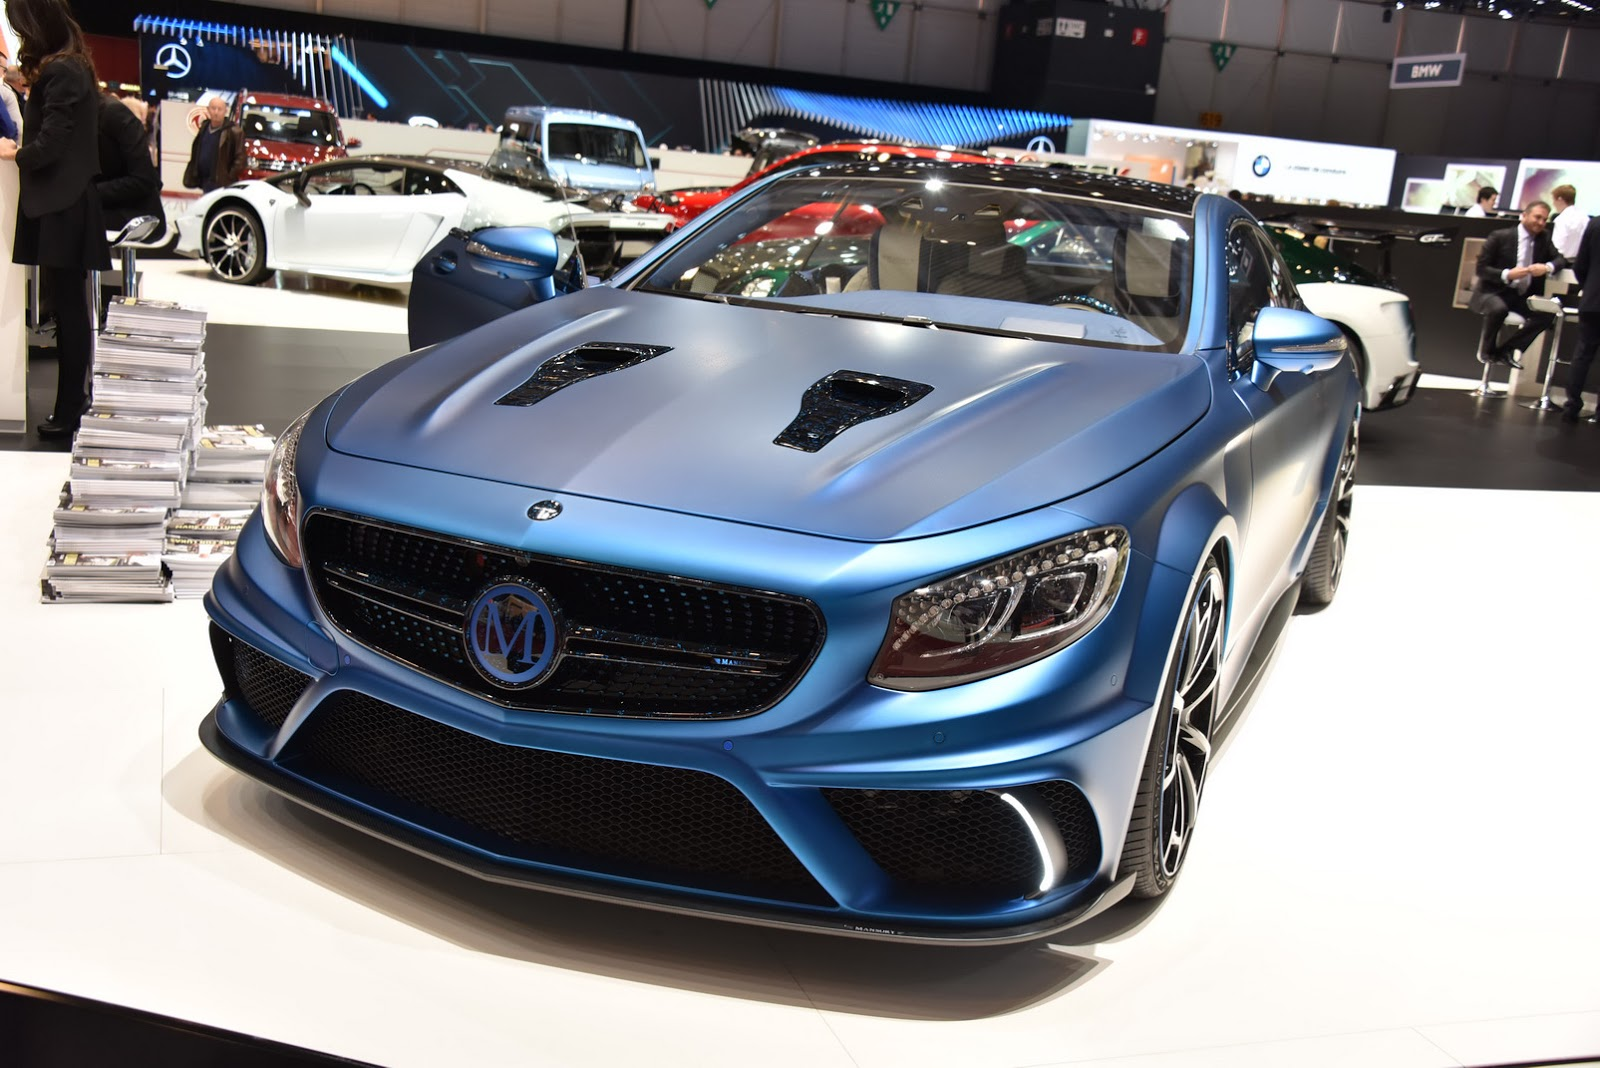 972hp Should Cure Mansory Mercedes Benz S63 Amg Coupe S